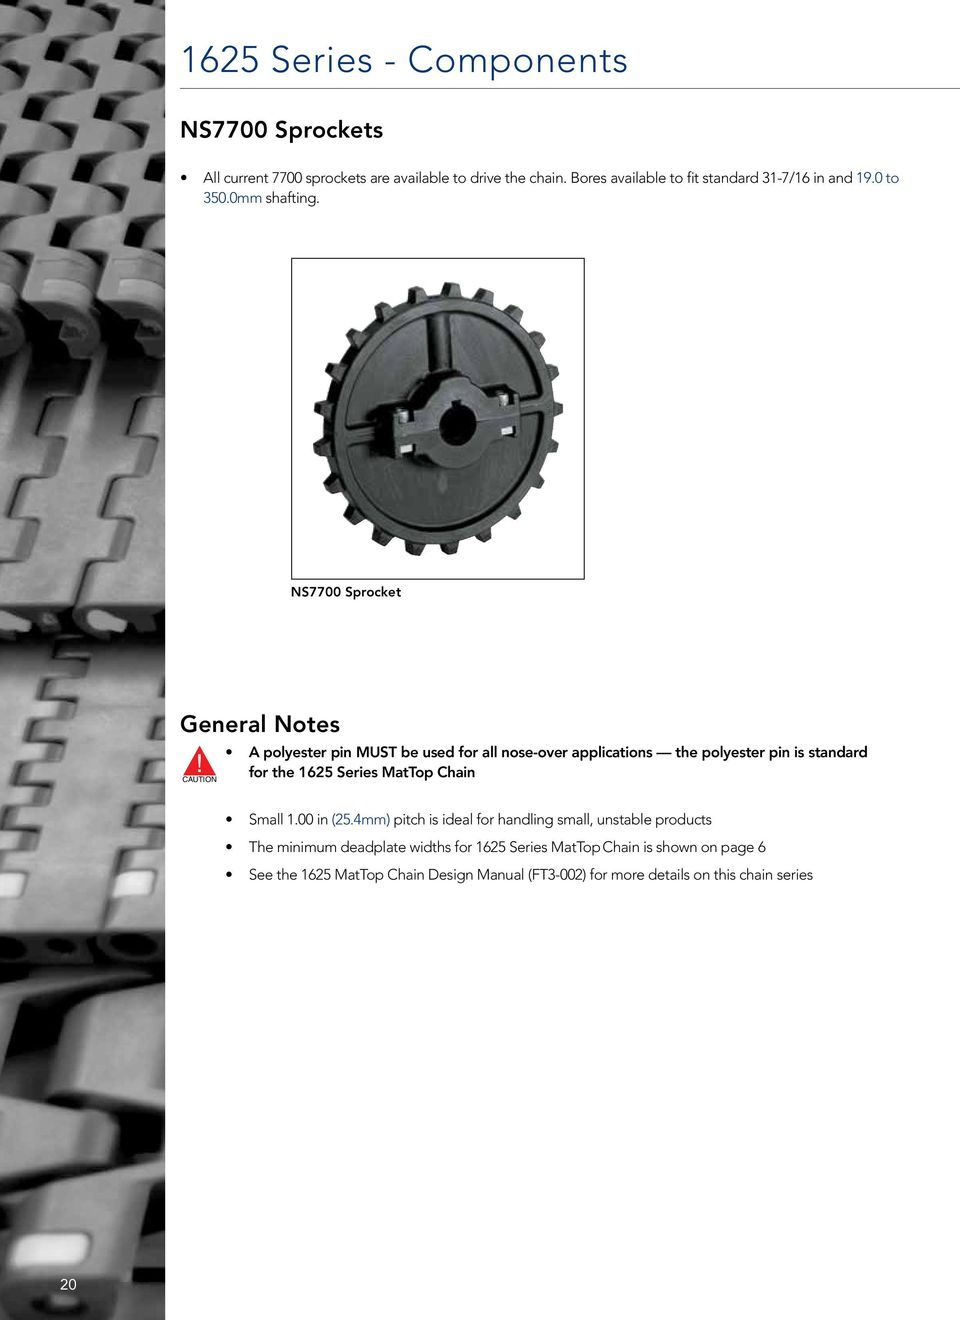 CAUTION A polyester pin MUST be used for all nose-over applications the polyester pin is standard for the 1625 Series MatTop Chain Small 1.